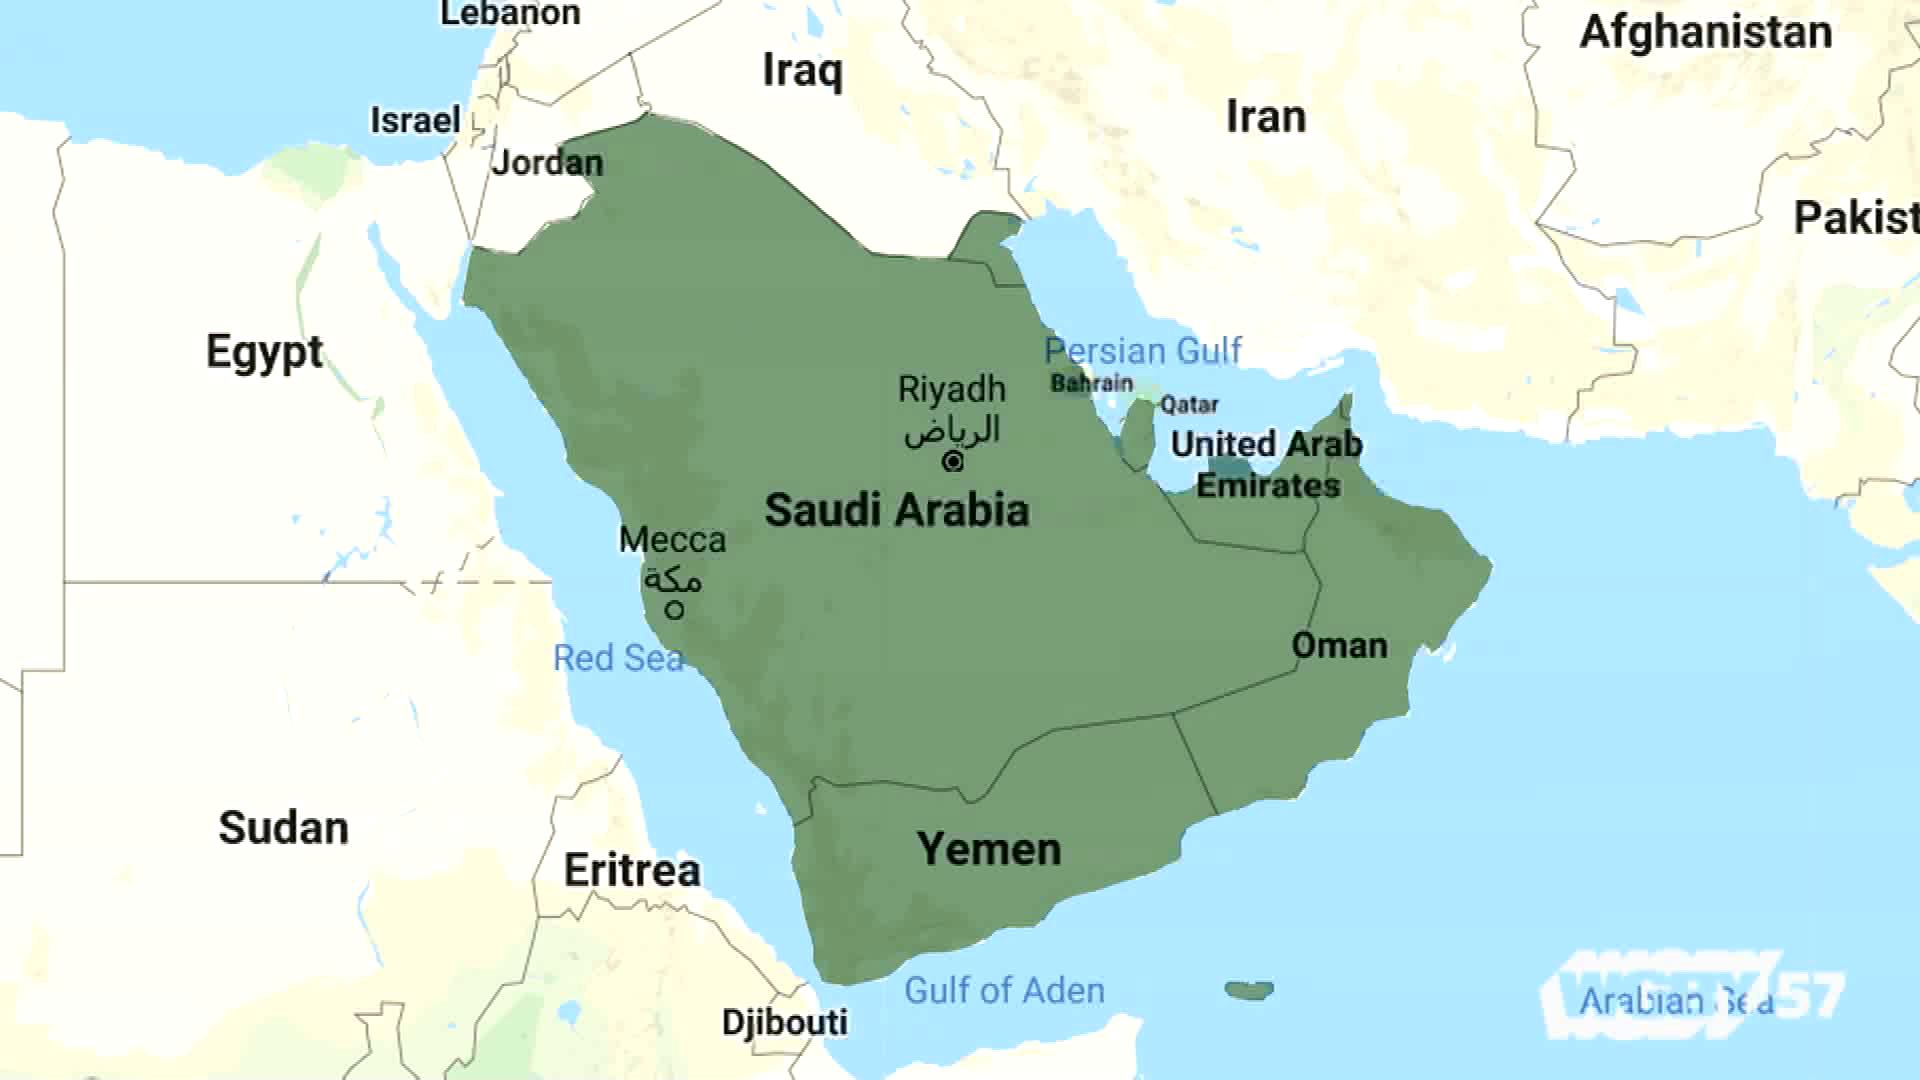 Former US Ambassador Mark Hambley & The Next Century Foundation Secretary General William Morris discuss the Arabian Peninsula, including why the small and little known region of the Middle East is so geopolitically important and the US's involvement in the Yemeni Civil War.